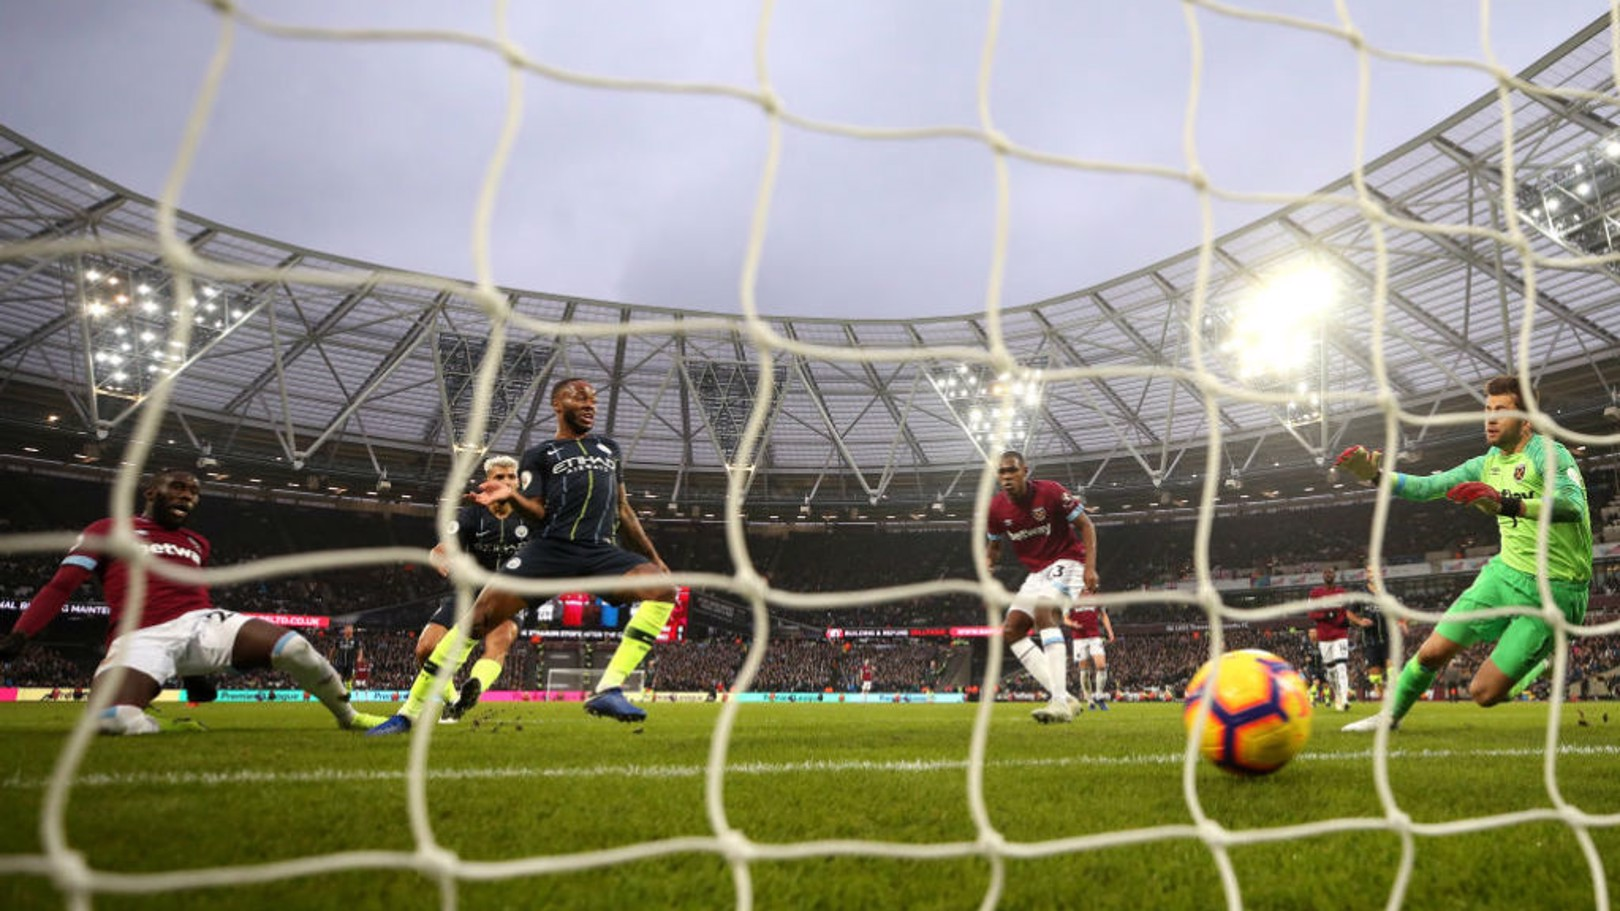 JUST TWO GOOD: Raheem Sterling slots home City's second goal